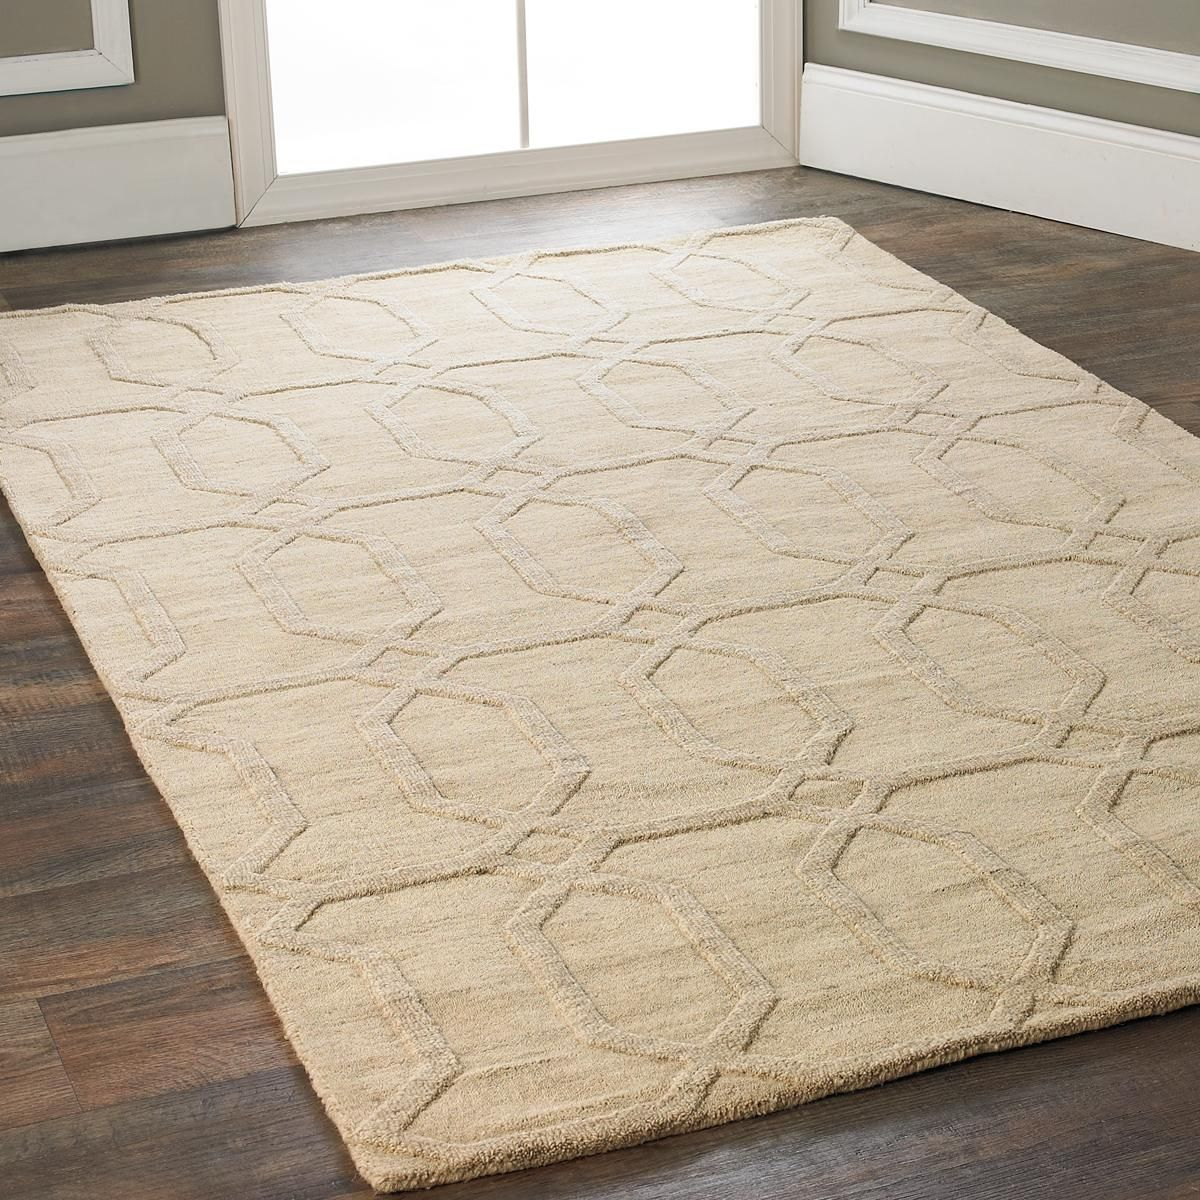 Diamond Prism Imprint Rug Rugs Diy Carpet Types Of Carpet